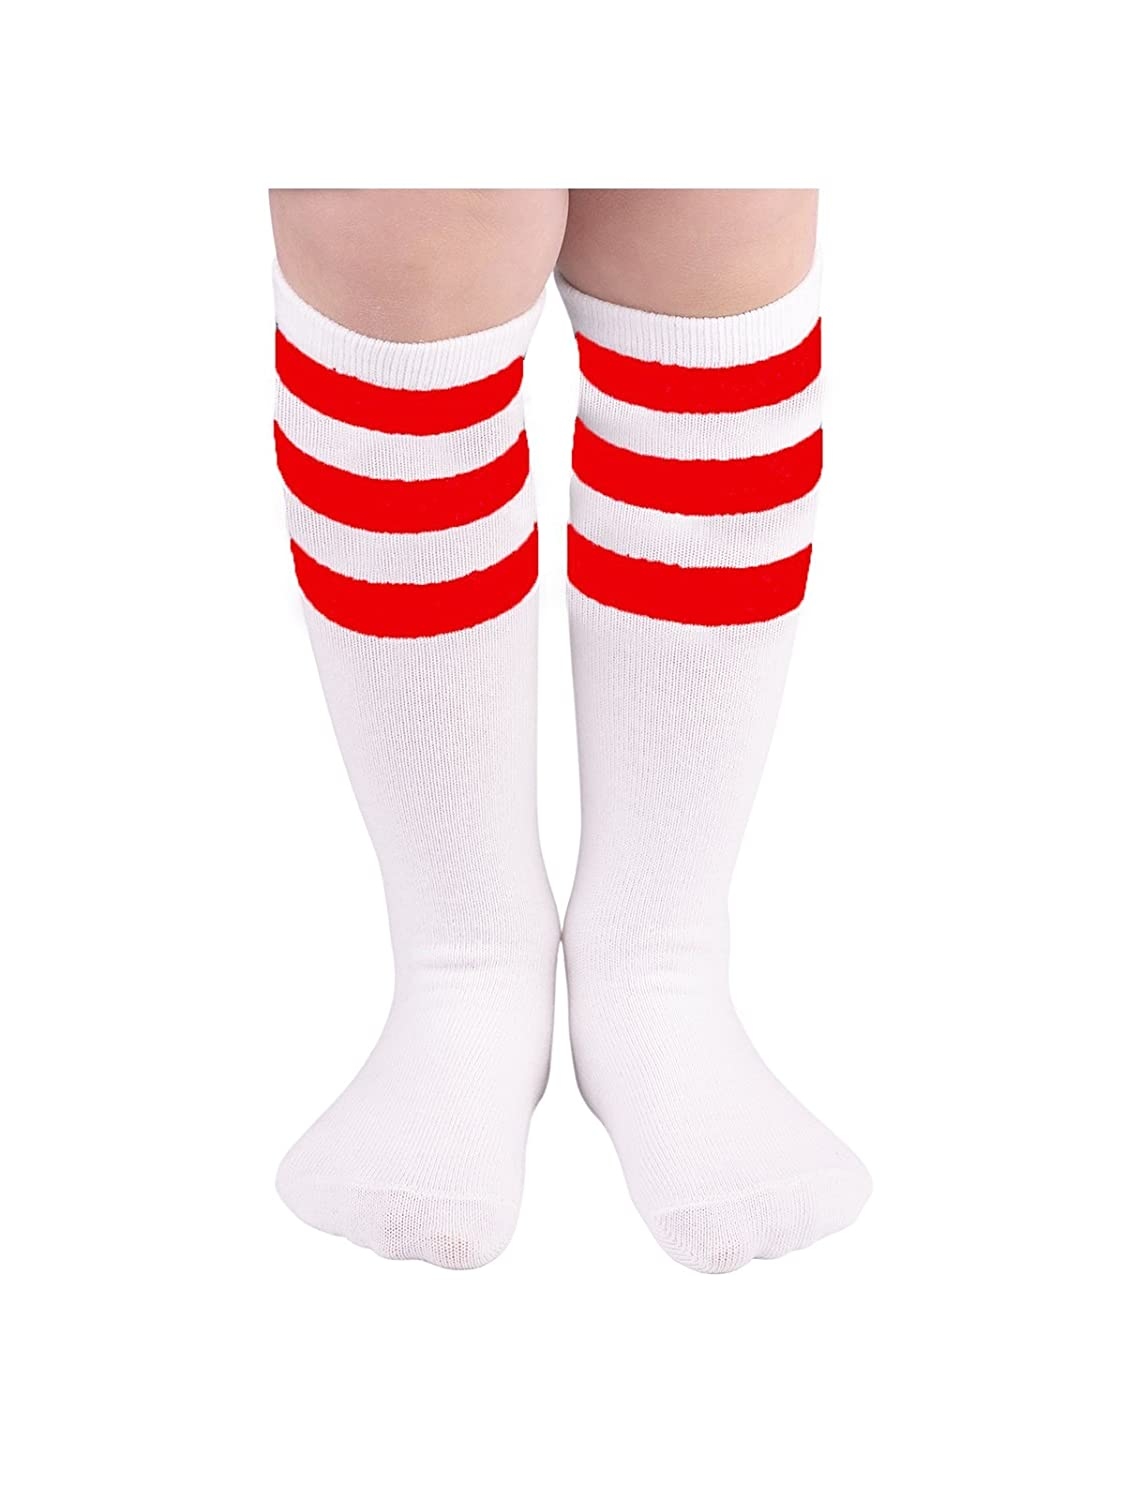 Zando Girls Boys Cotton Casual Knee Highs Cosplay Triple Stripes Uniform Socks Athletic Tube Socks for Kids Children MNFULBS0982S013P